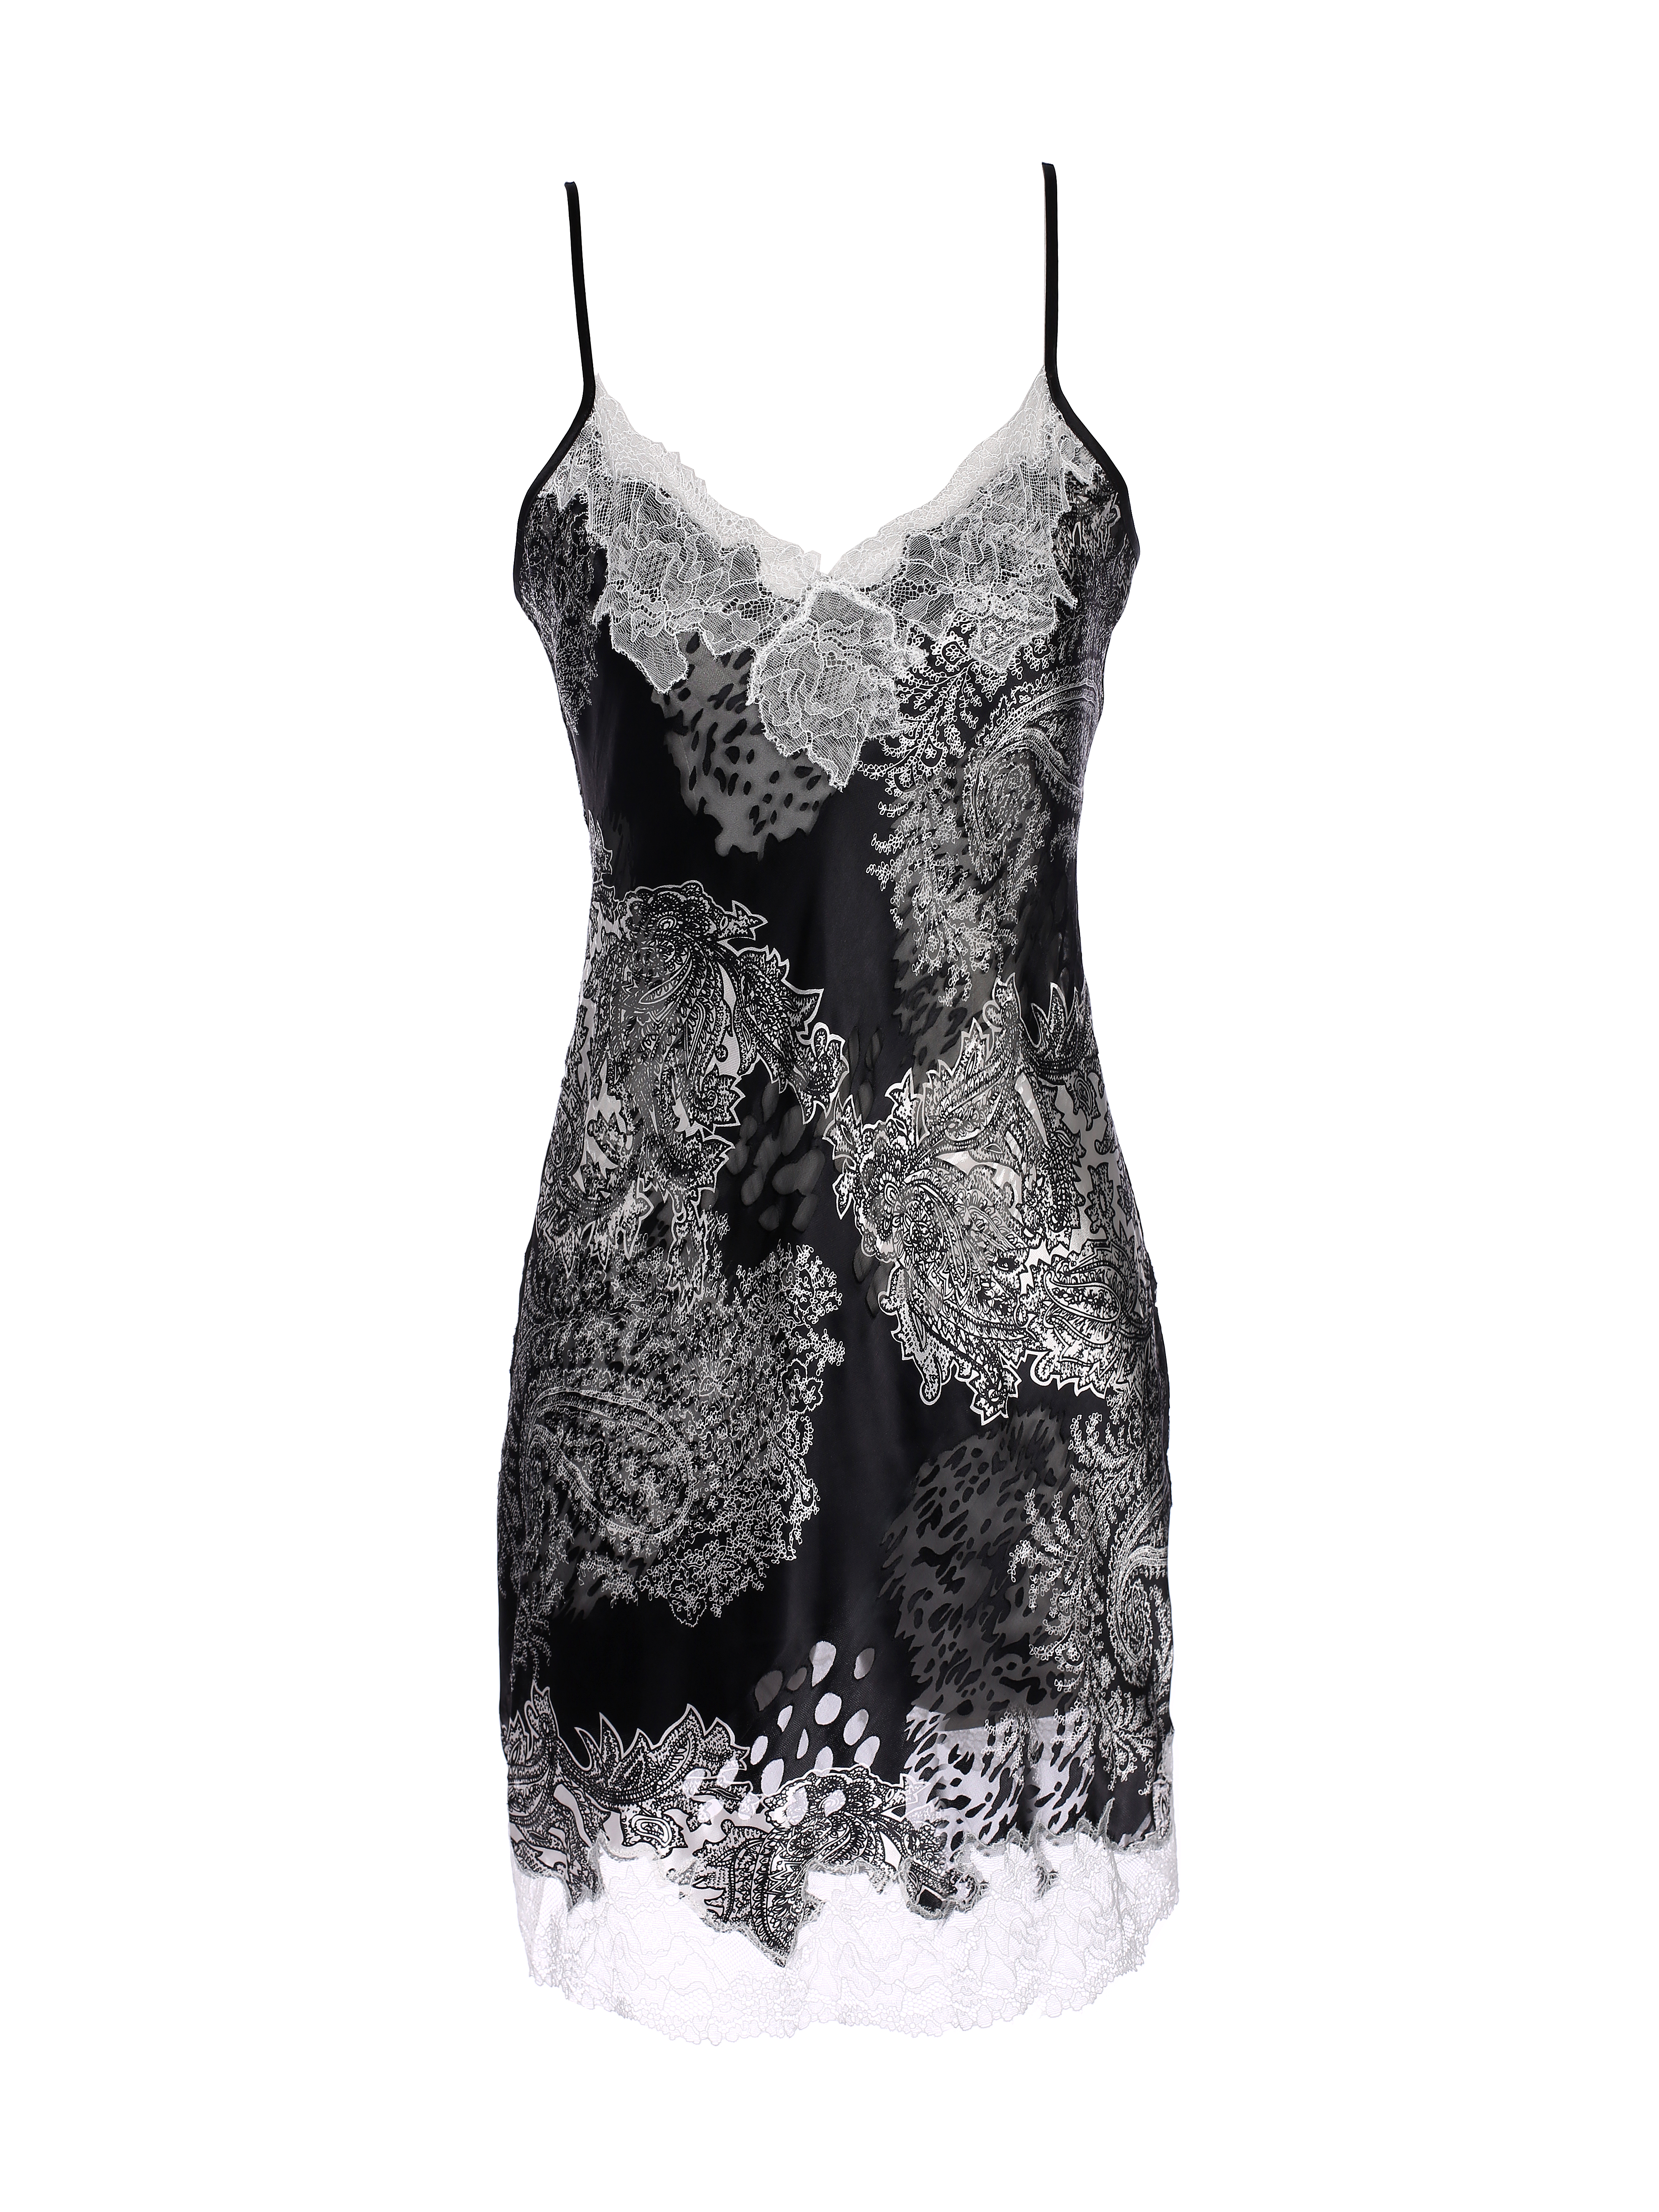 Silk & Lace Royal Babydoll by Lucia Berutto on curated-crowd.com